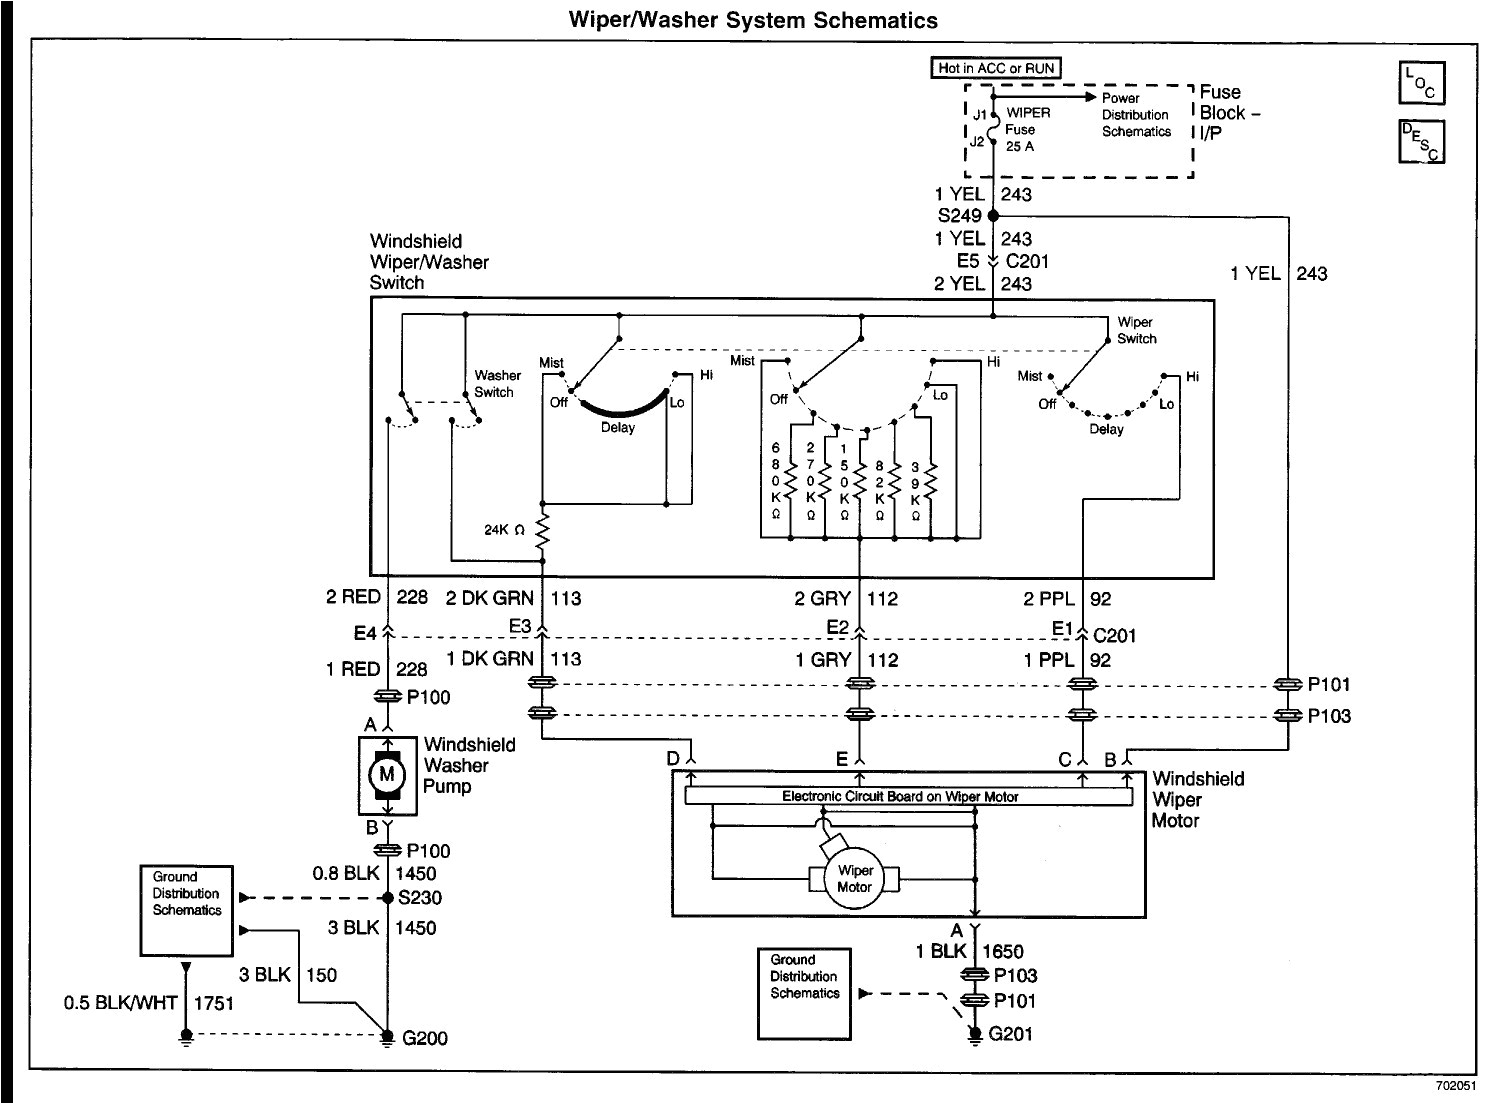 buick abs diagram wiring diagram view 2002 buick rendezvous abs wiring diagram buick abs wiring diagram